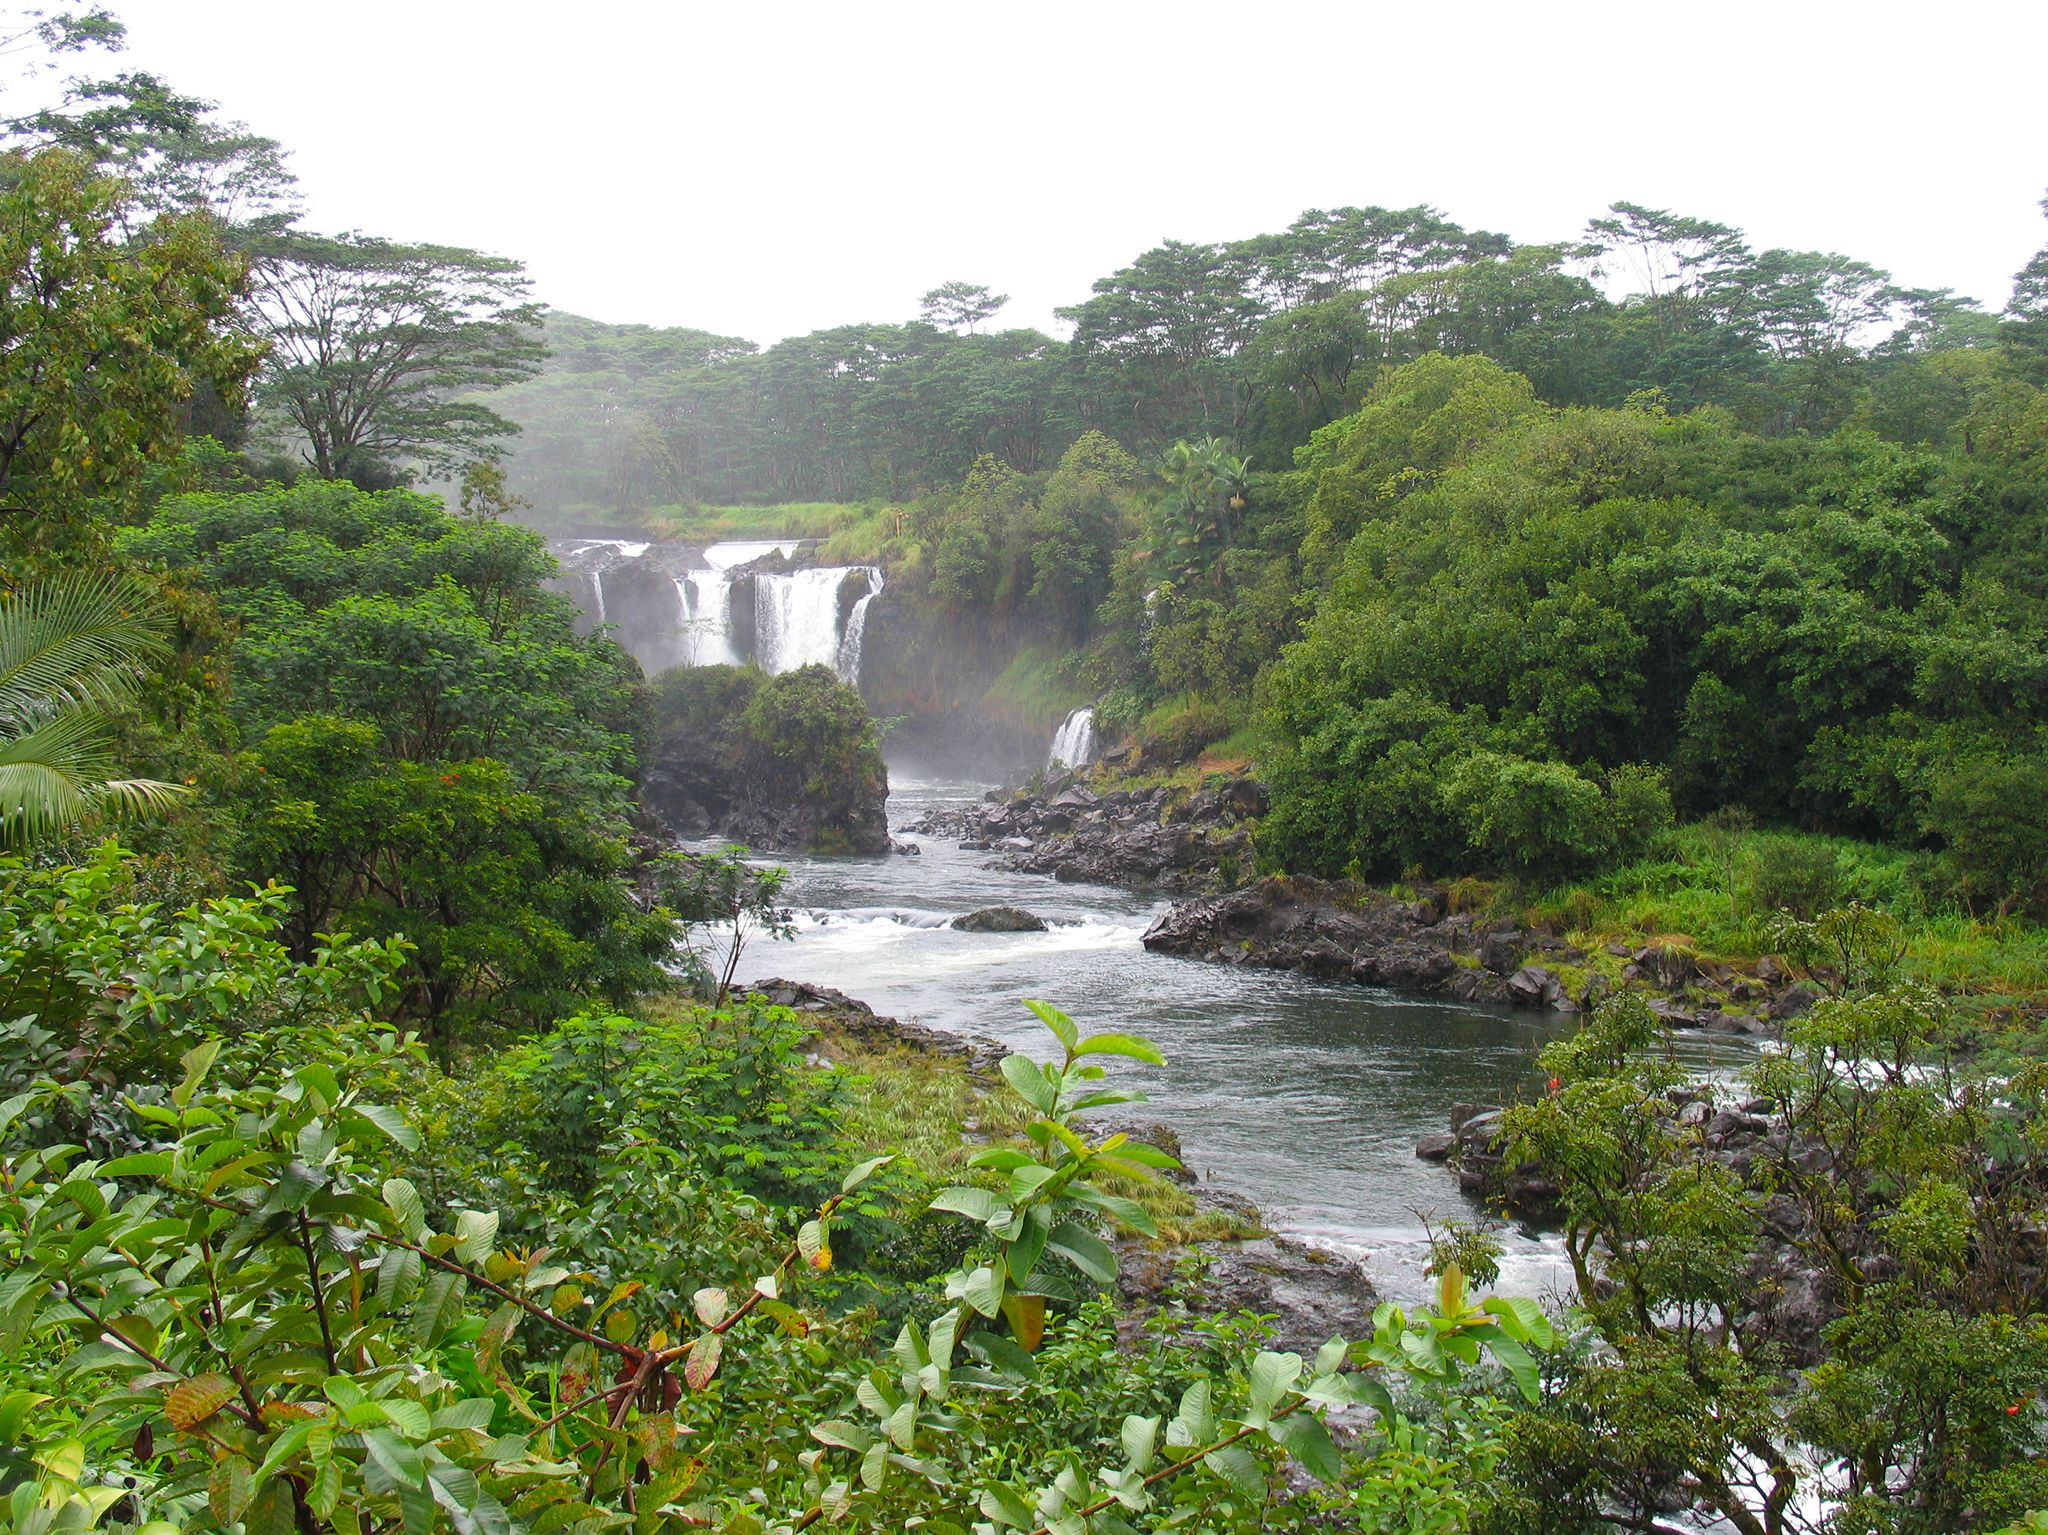 Beautiful Pe'epe'e Falls above the charming town of Hilo, Hawaii. This image is from Amazing... [Photo of the day - April 2020]